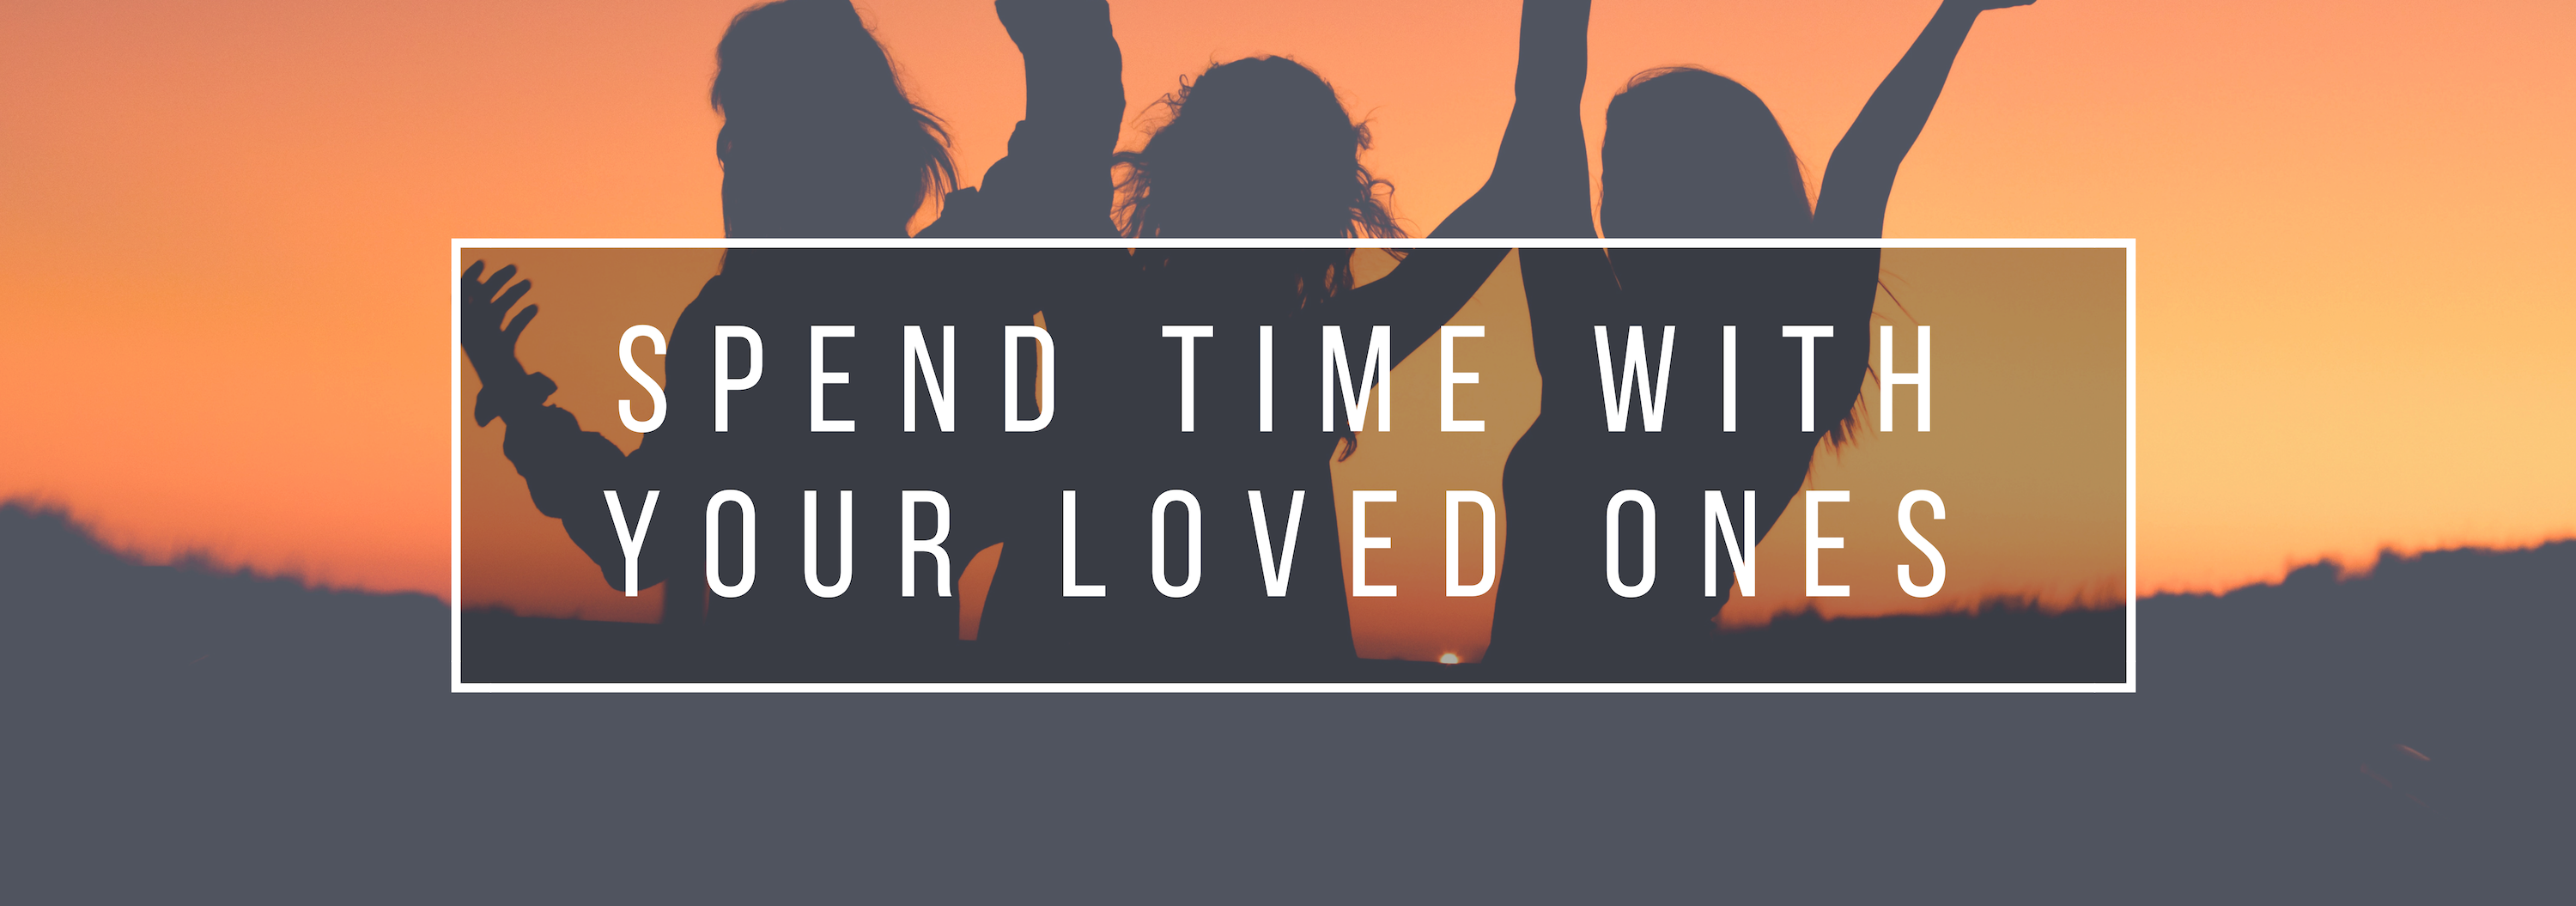 spend time with your loved ones